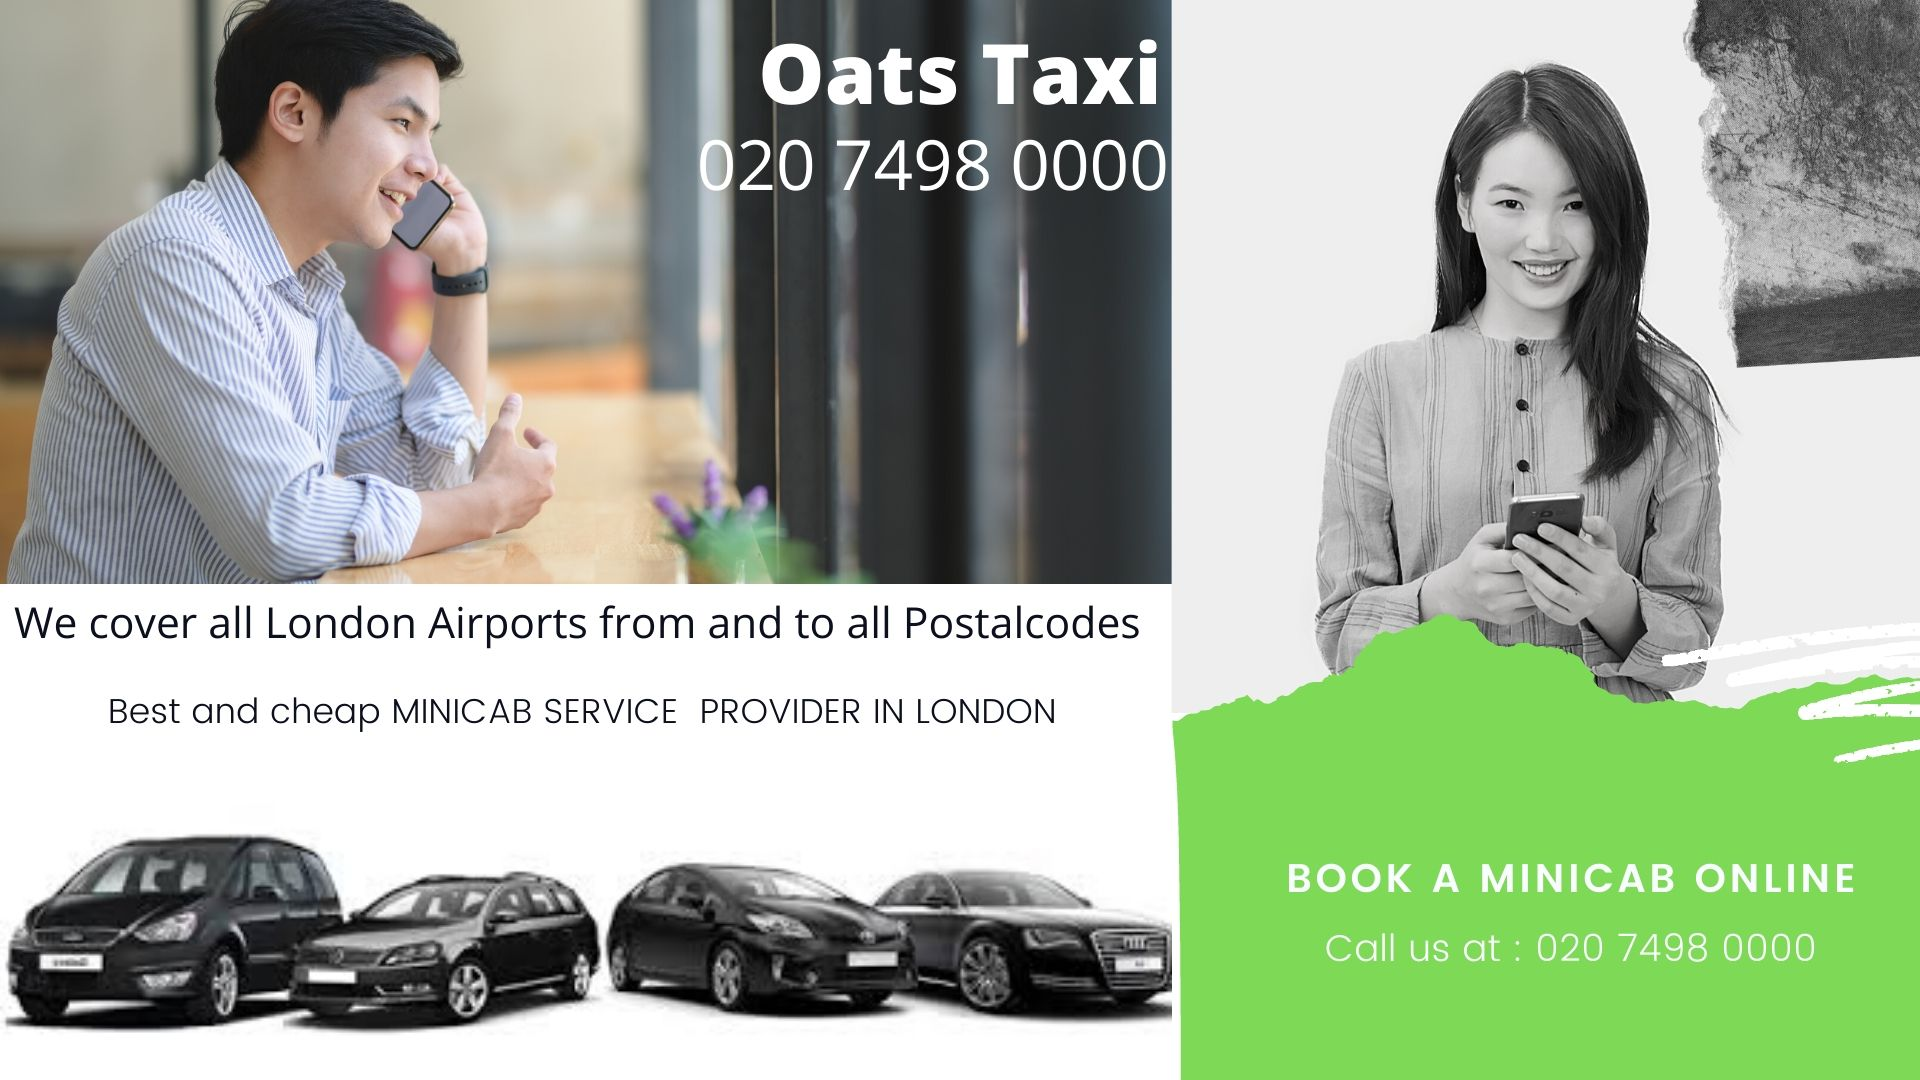 Minicab Office Near BLONDEL STREET, Battersea SW11, Minicab From Battersea SW11 To Gatwick Airport